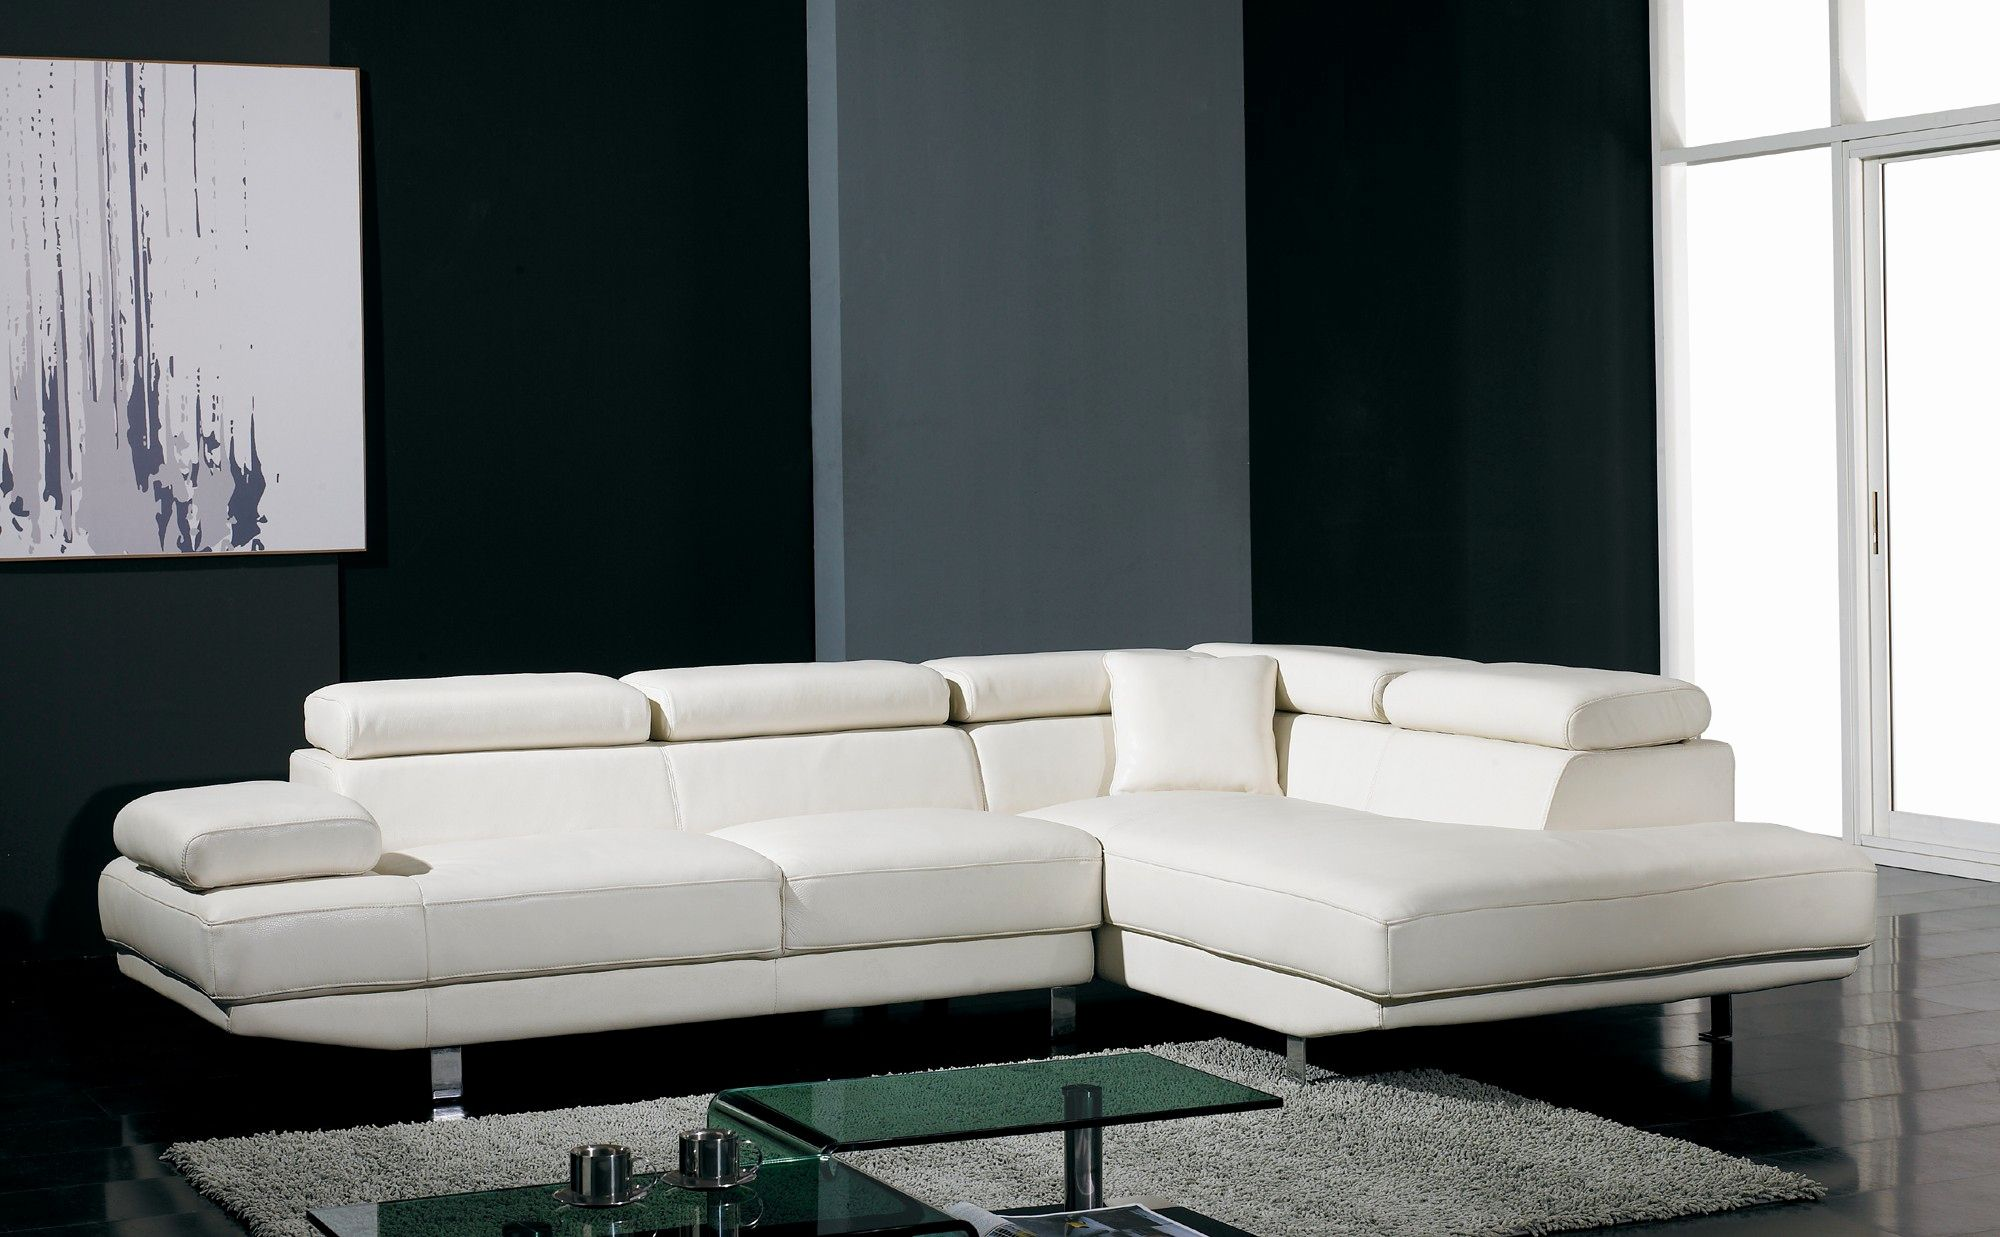 Awesome White Leather Contemporary Sofa Shot T60 Ultra Modern White Leather Sectional Modern Sofa Sectional White Sectional Sofa Modern Leather Sectional Sofas